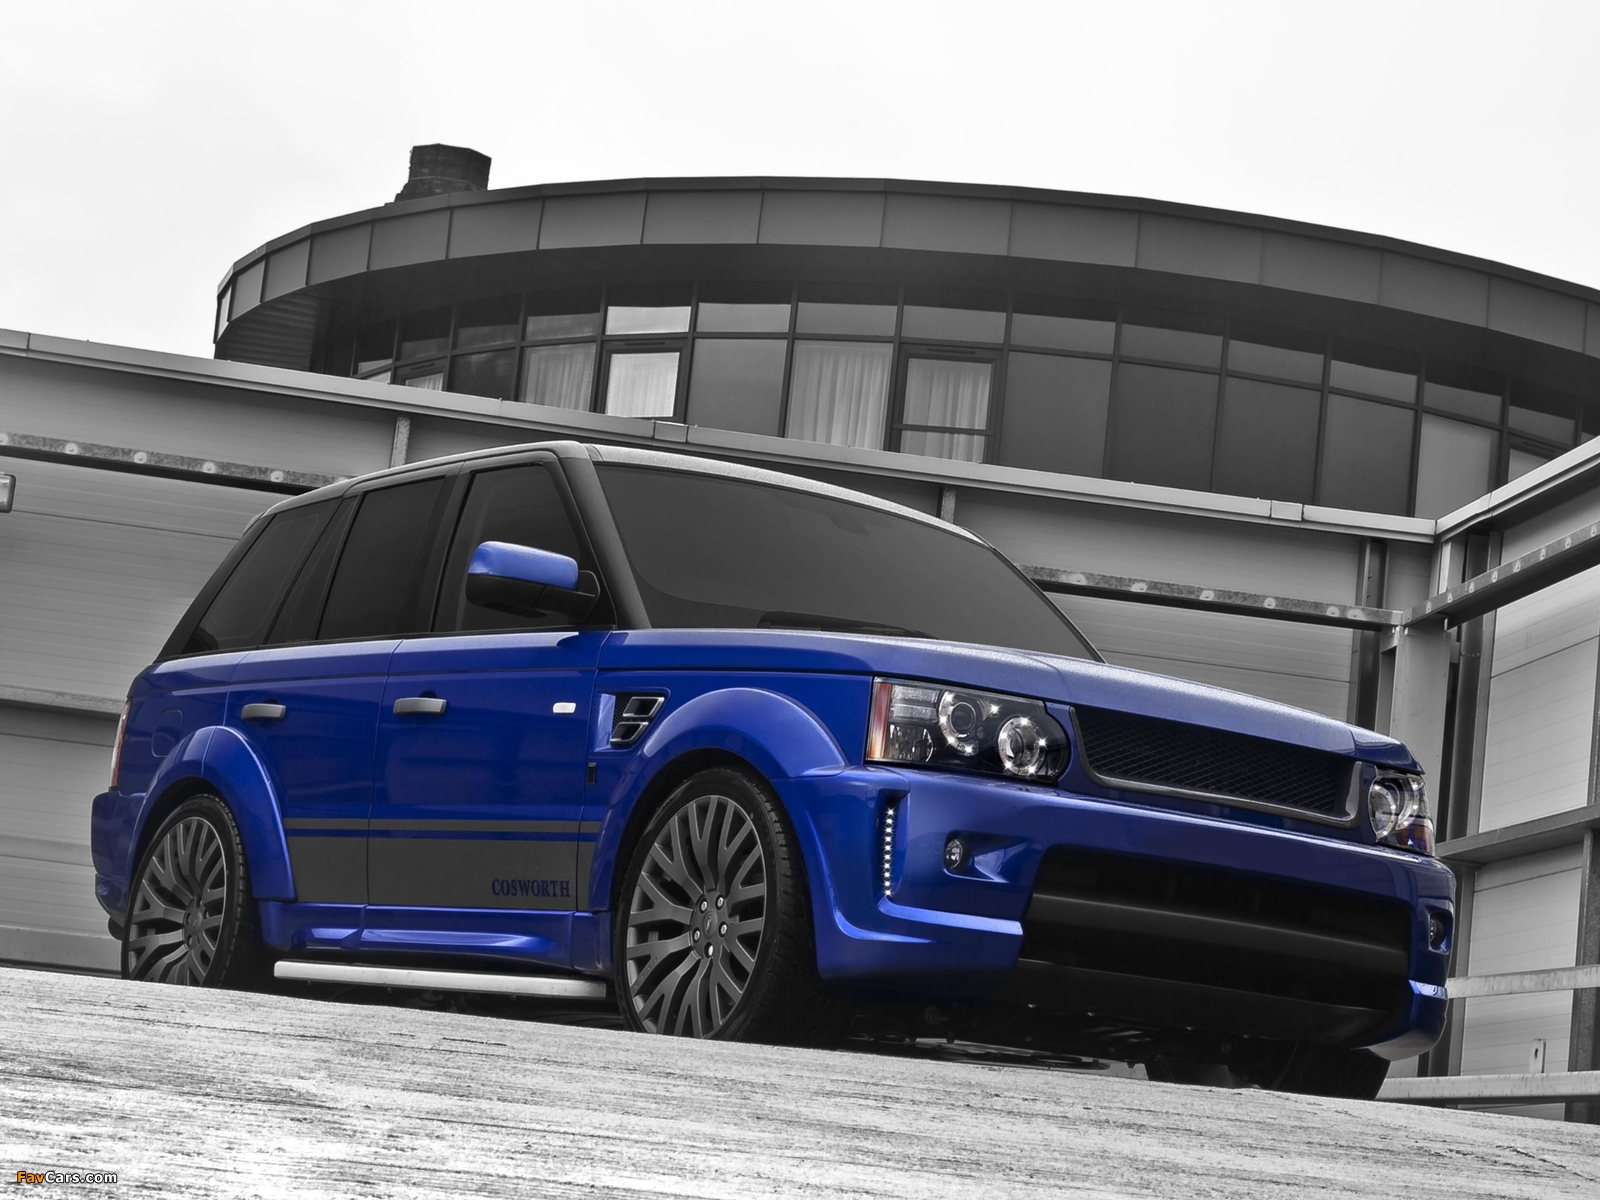 Project Kahn Cosworth Range Rover Sport 300 2008 wallpapers (1600 x 1200)